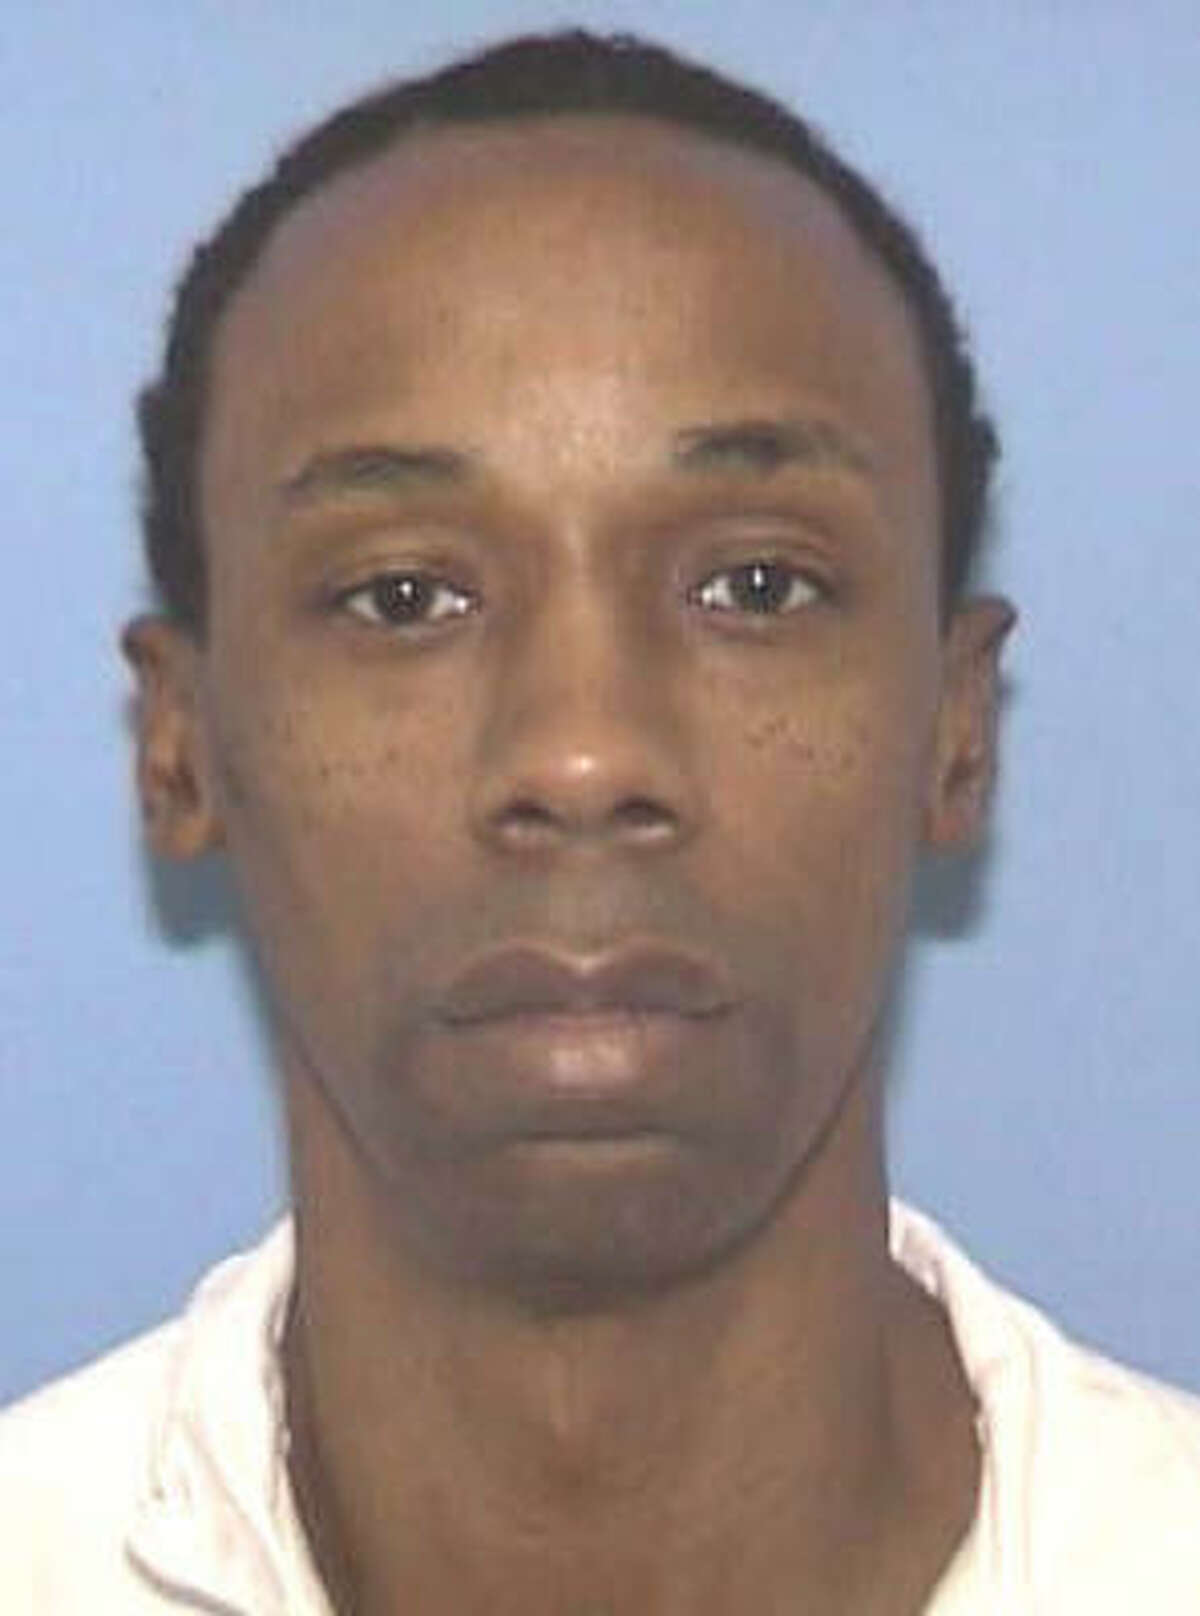 Michael Anthony Green was convicted by faulty eyewitness identification.